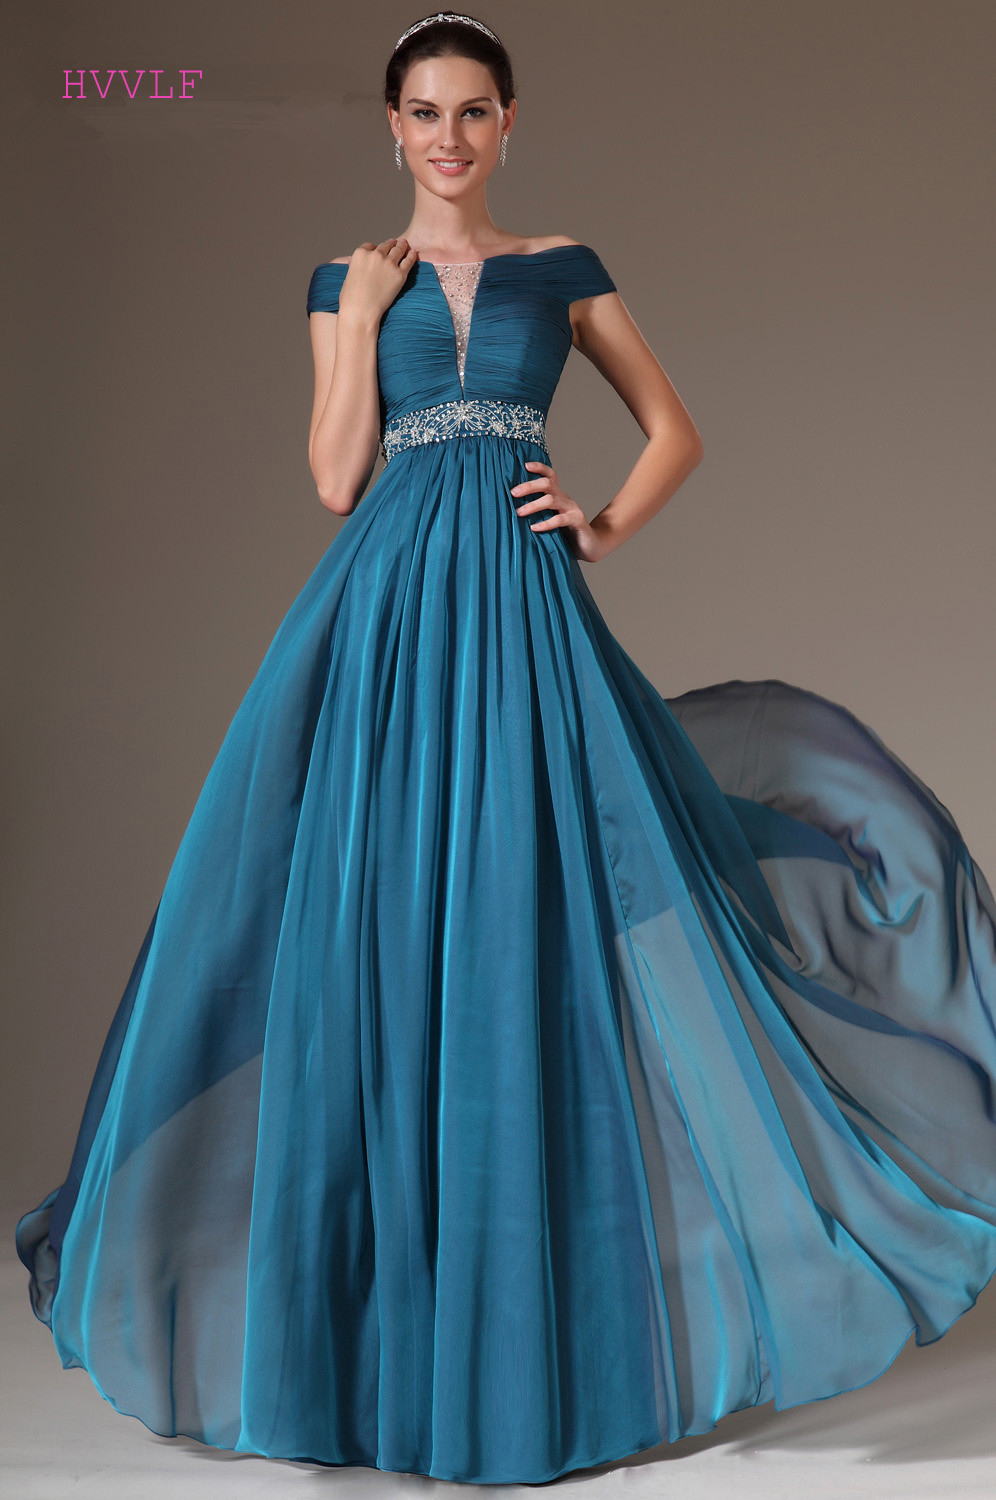 Blue Evening Dresses 2019 A line Cap Sleeves Chiffon Beaded Backless Plus Size Long Evening Gown